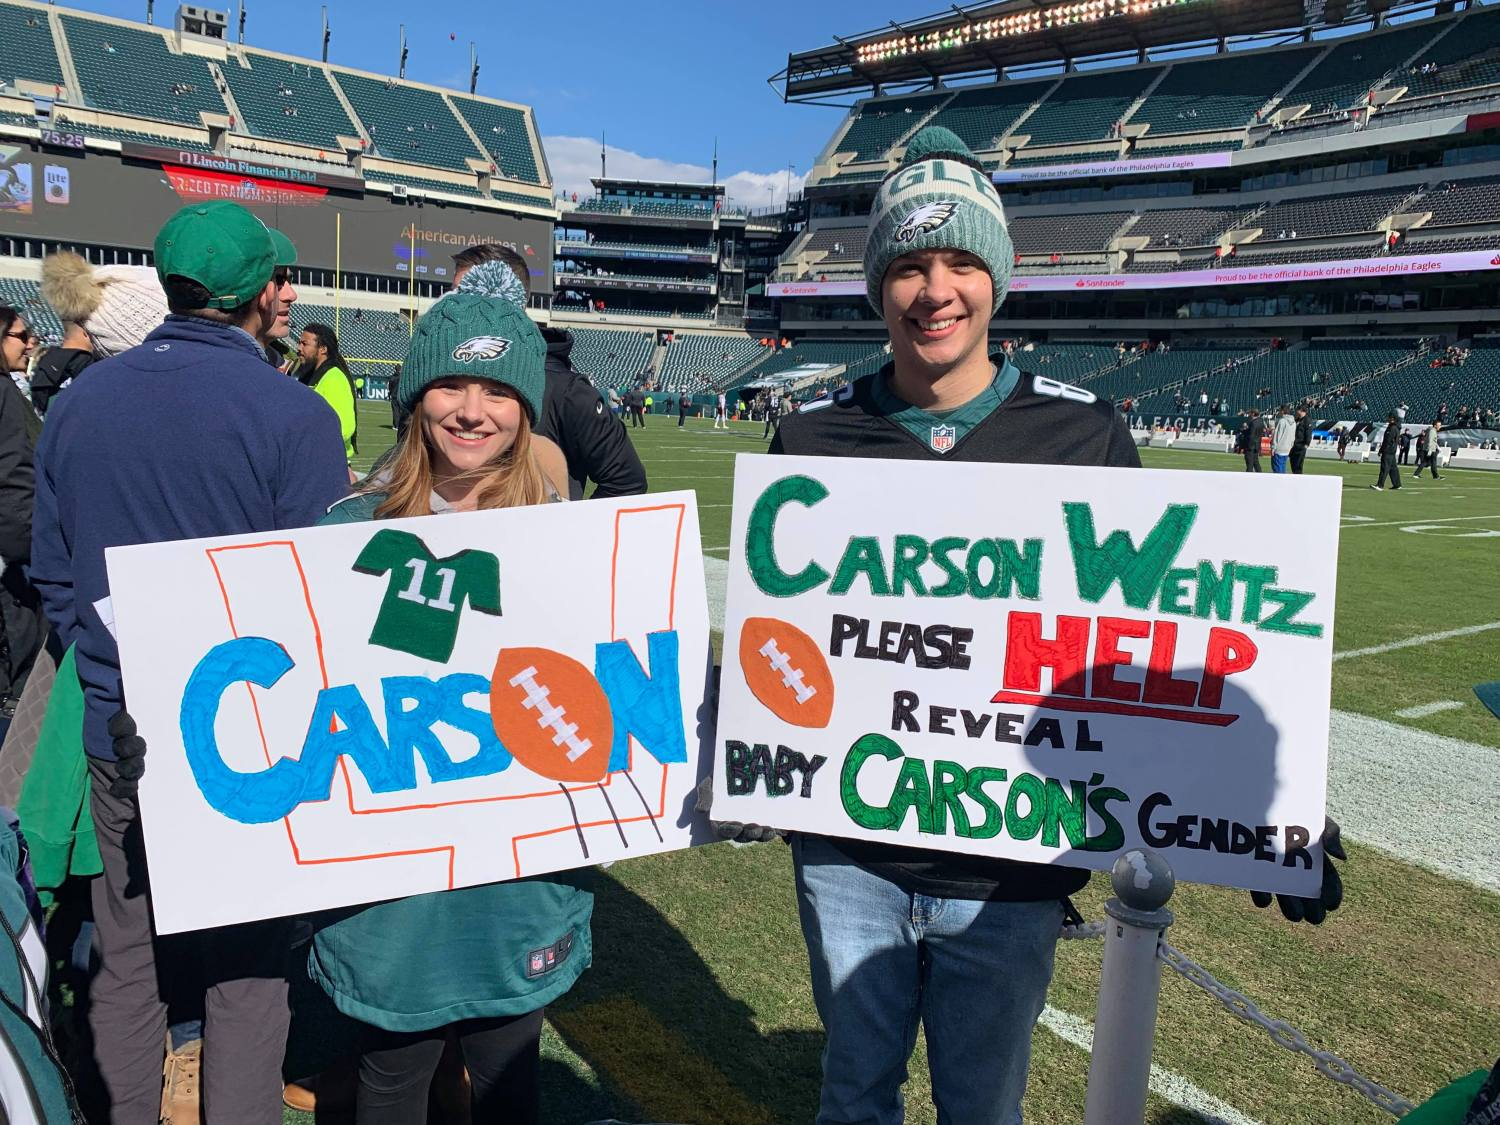 Bloomsburg Couple Hoping To Have Carson Wentz Help Reveal Gender